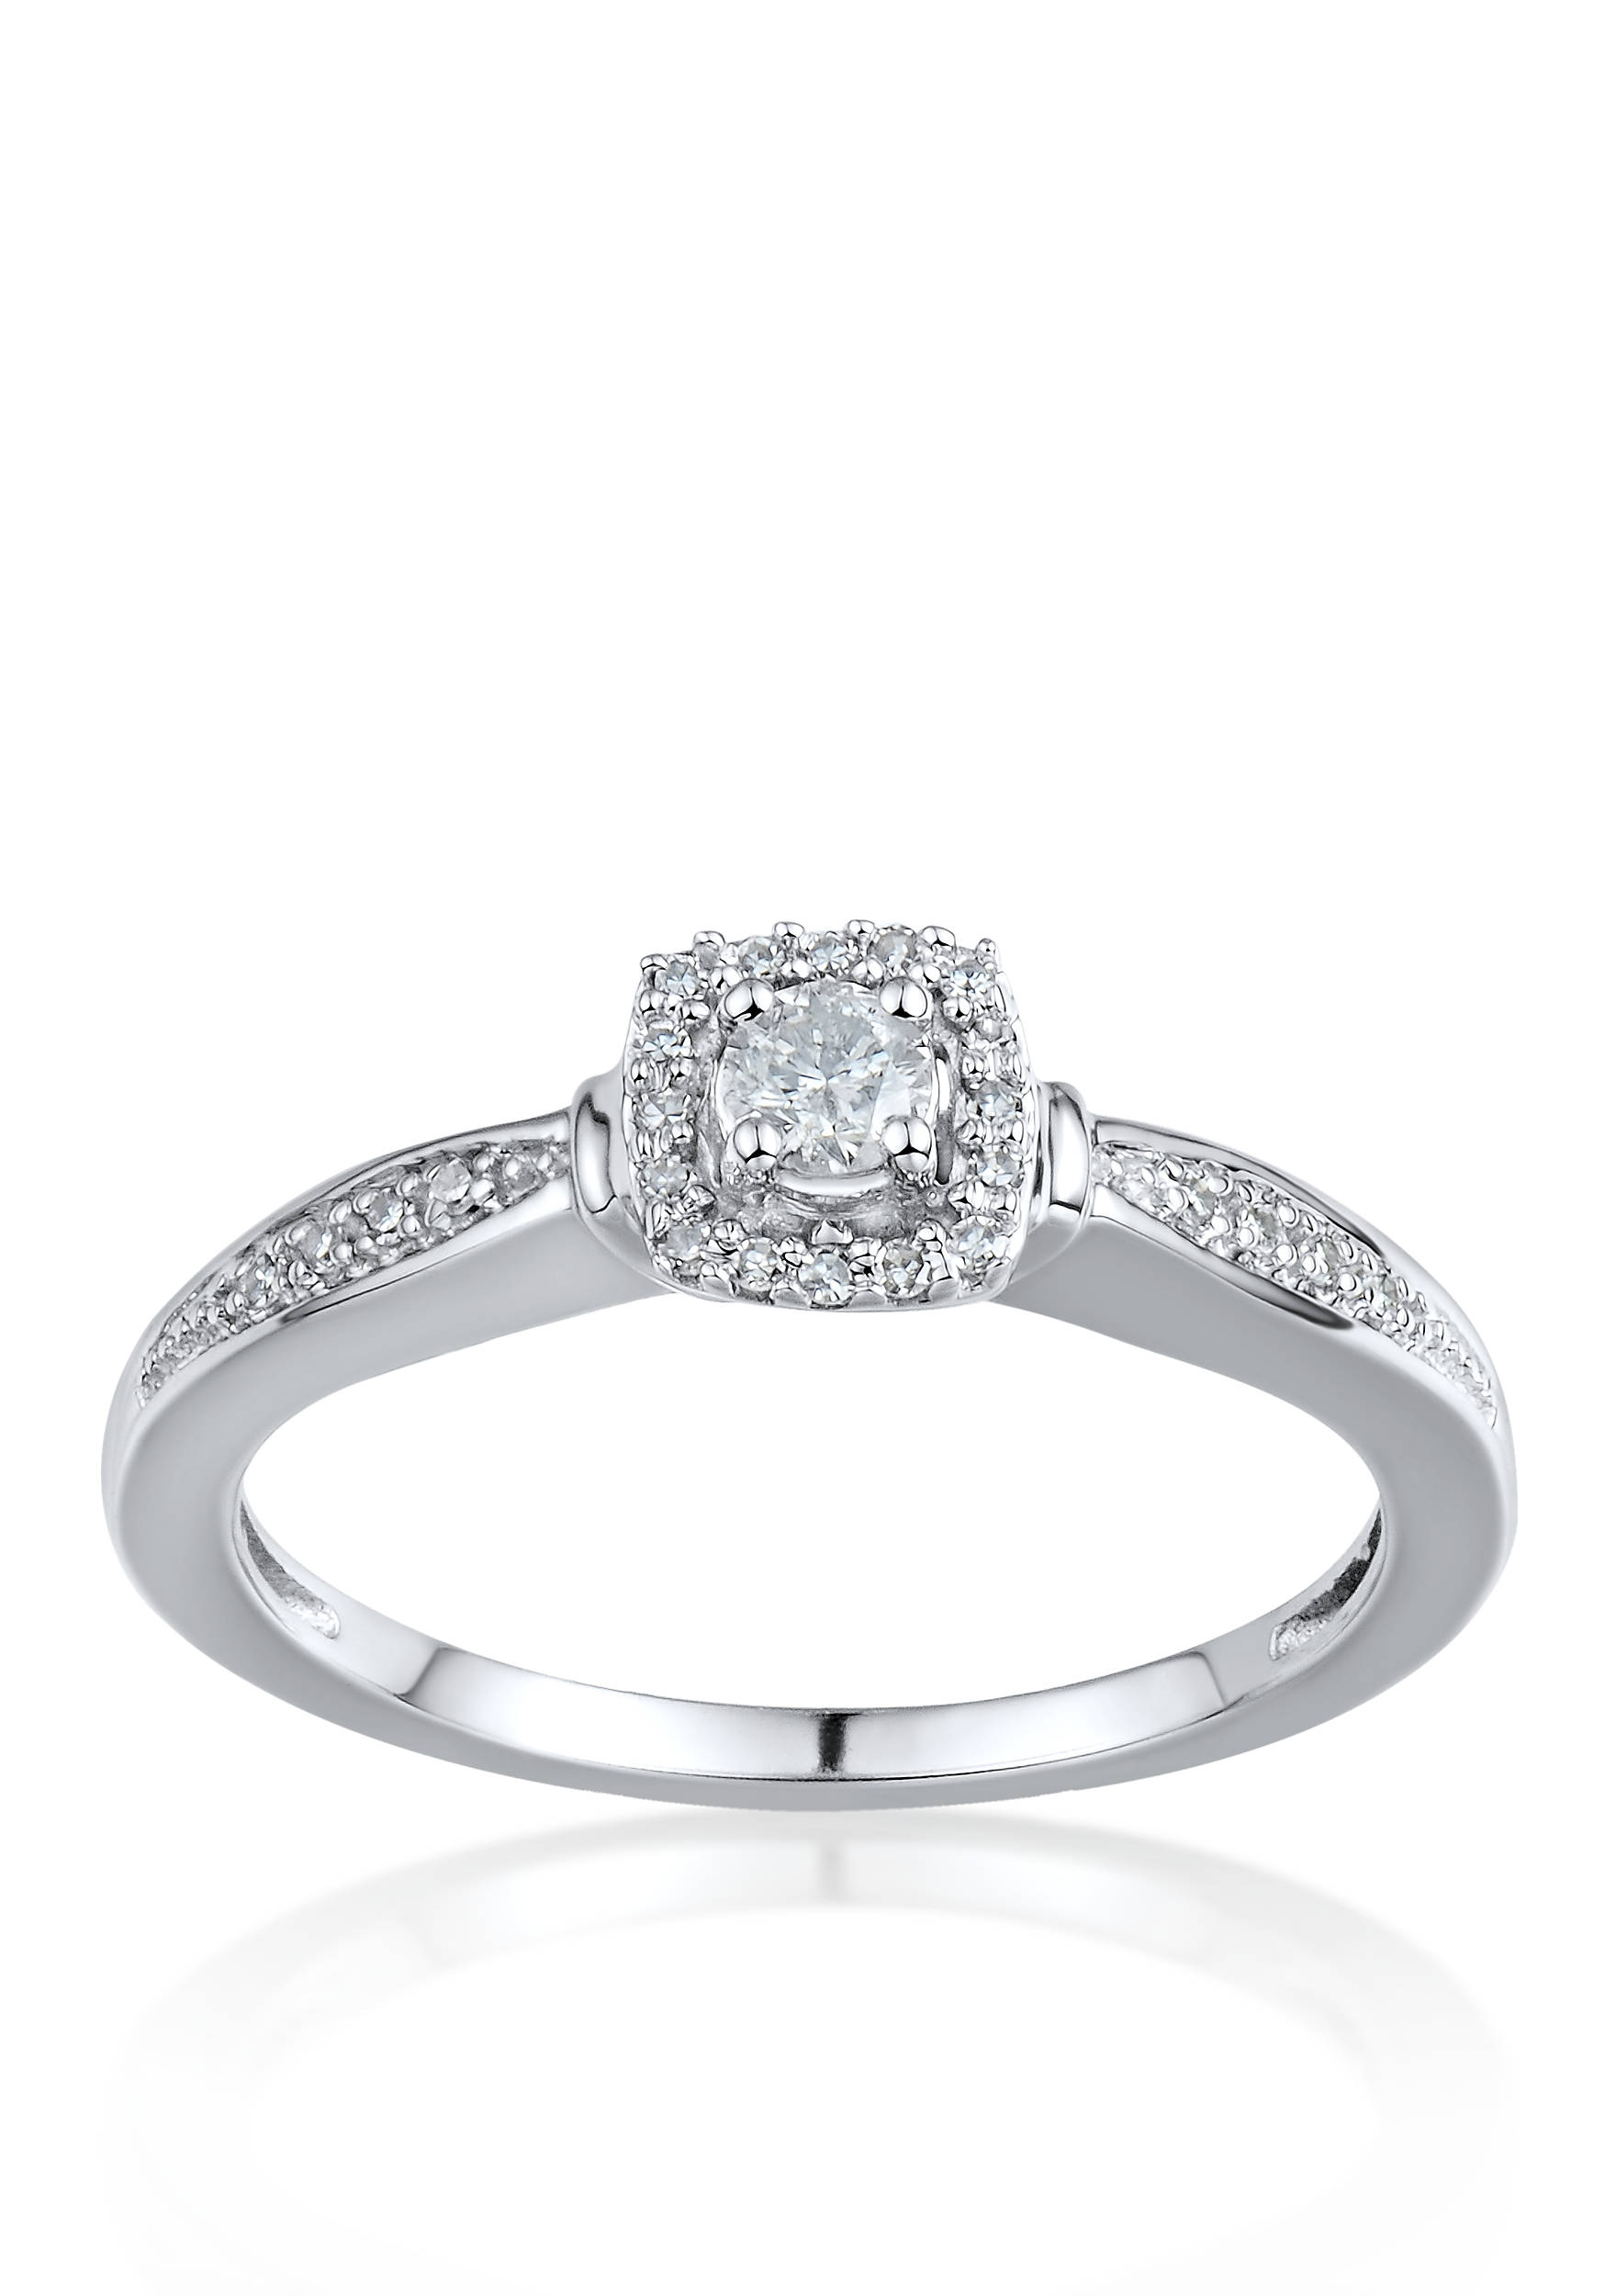 pinterest younkin wedding diamond girls ring dream engagement promise tiana by mitchell pin rings on and